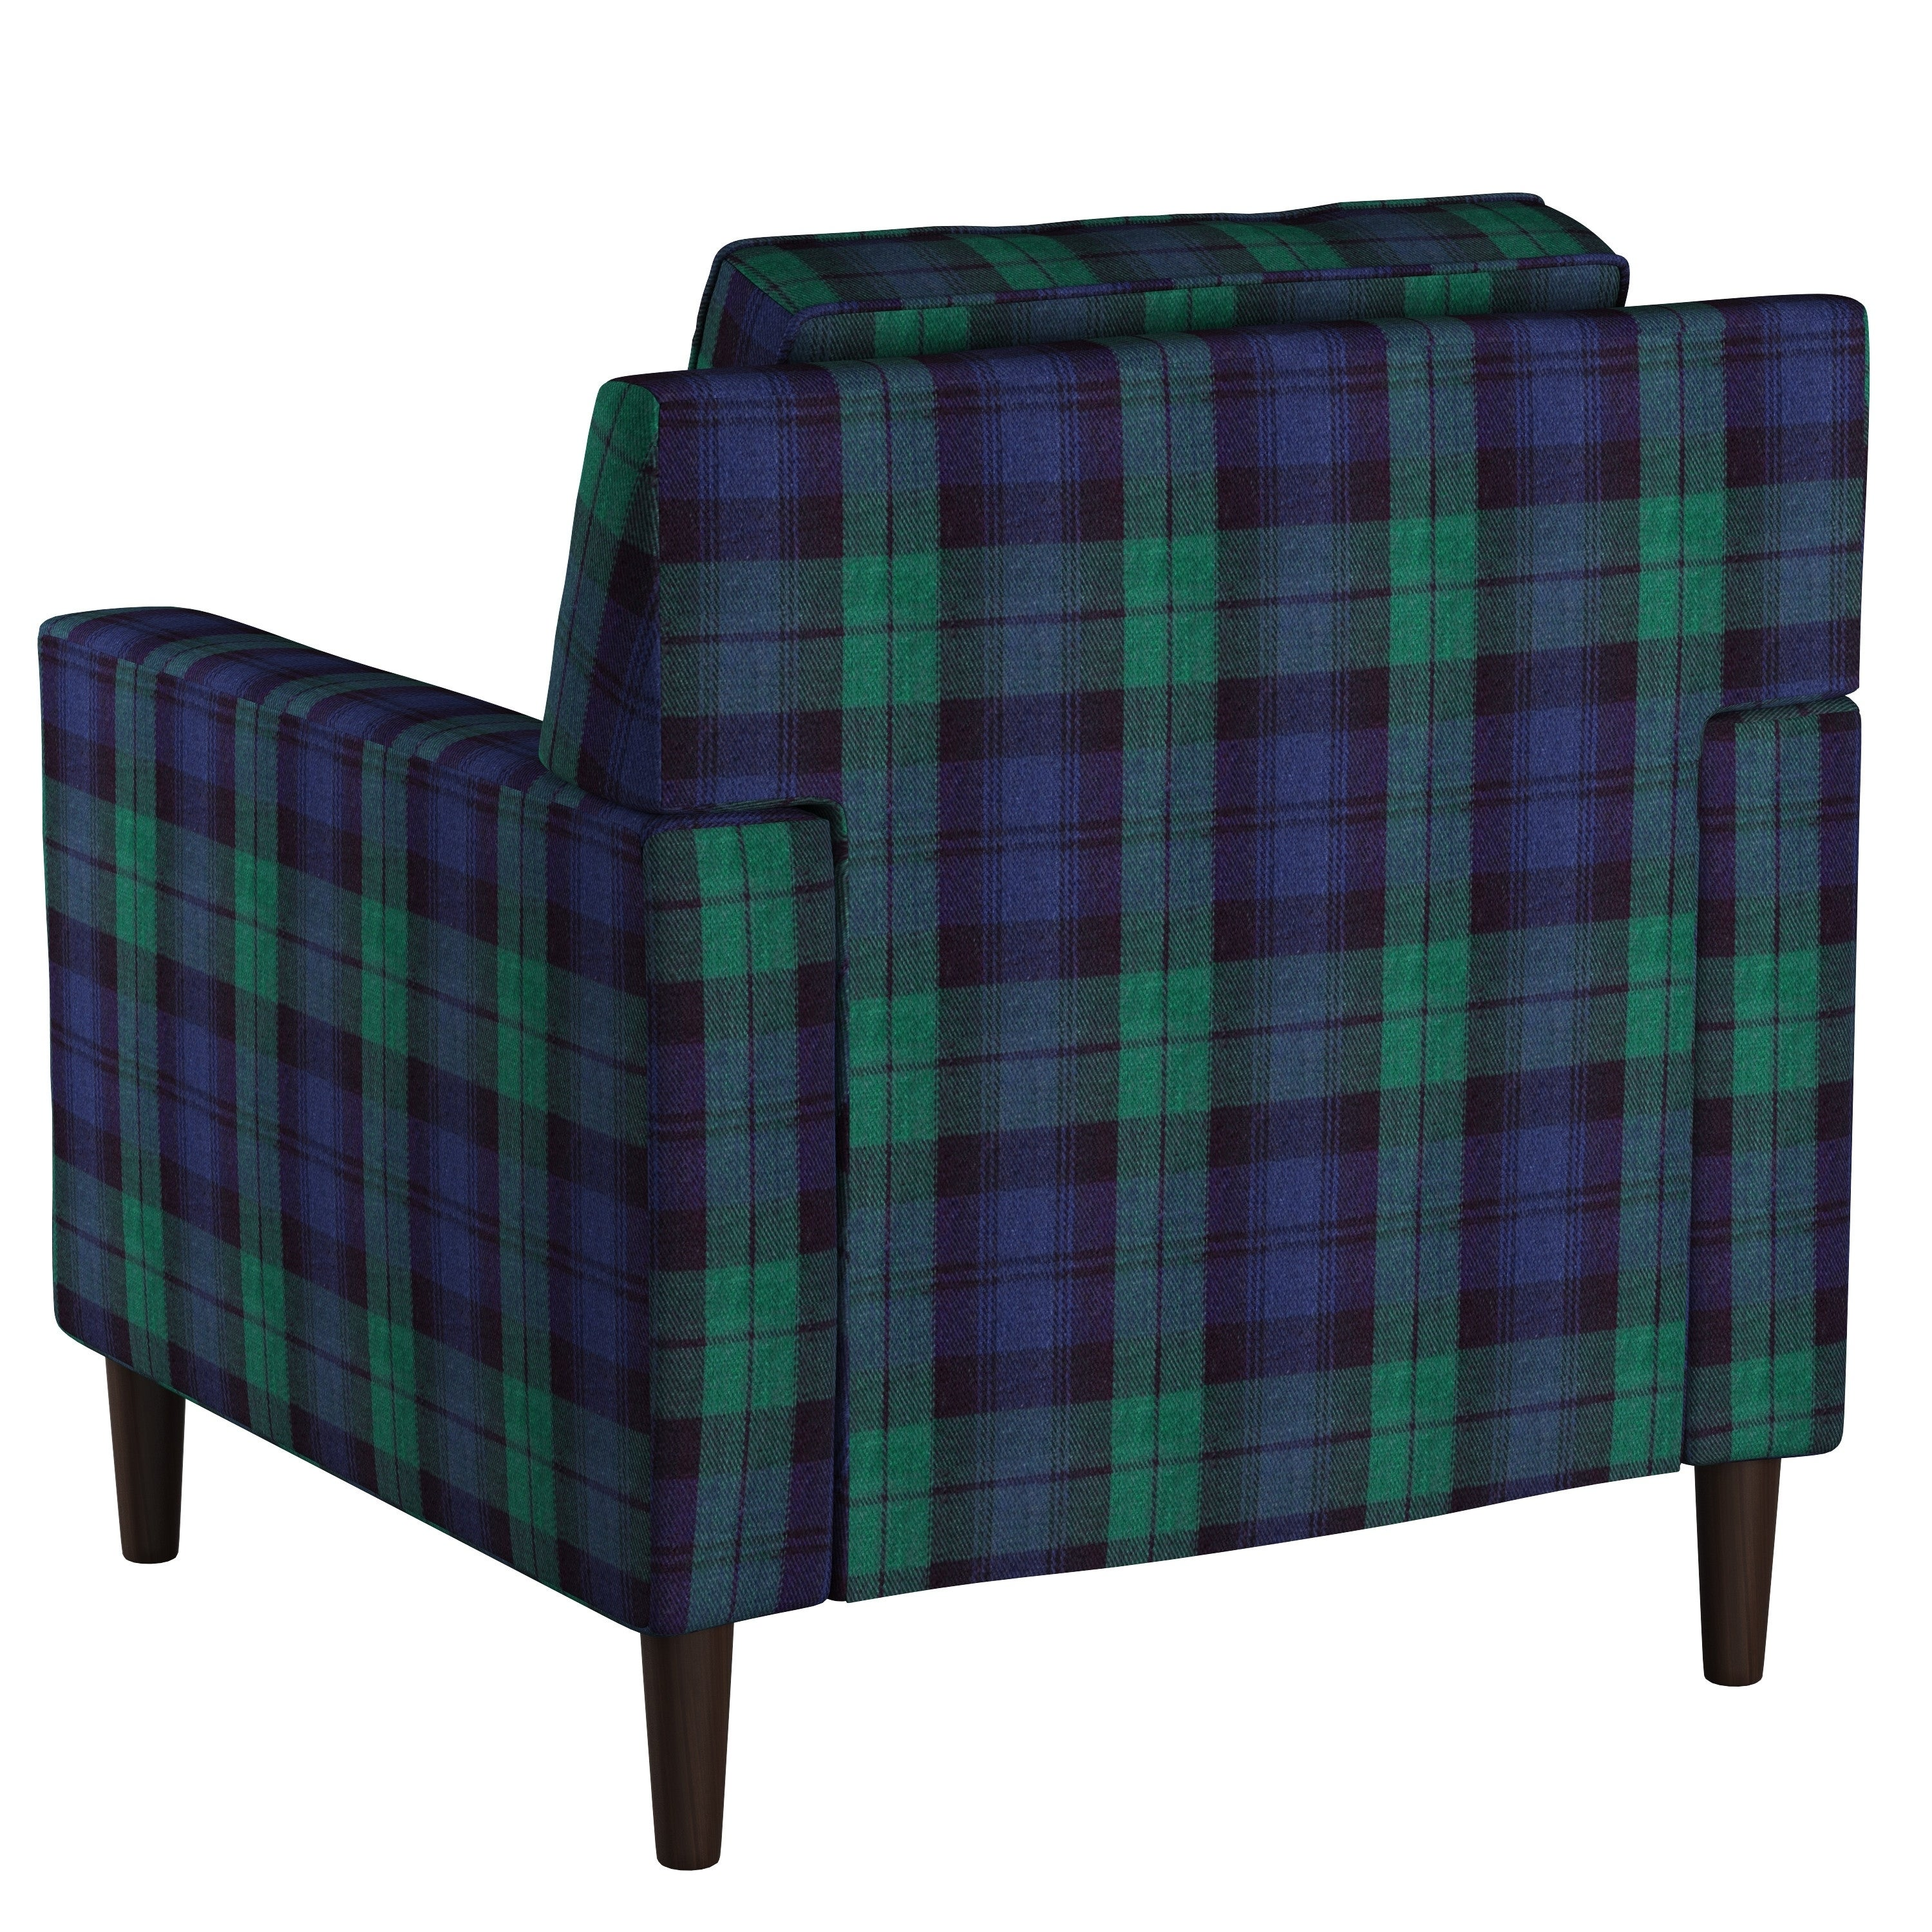 Genial Shop Skyline Furniture Accent Chair In Plaid   On Sale   Free Shipping  Today   Overstock.com   18029830